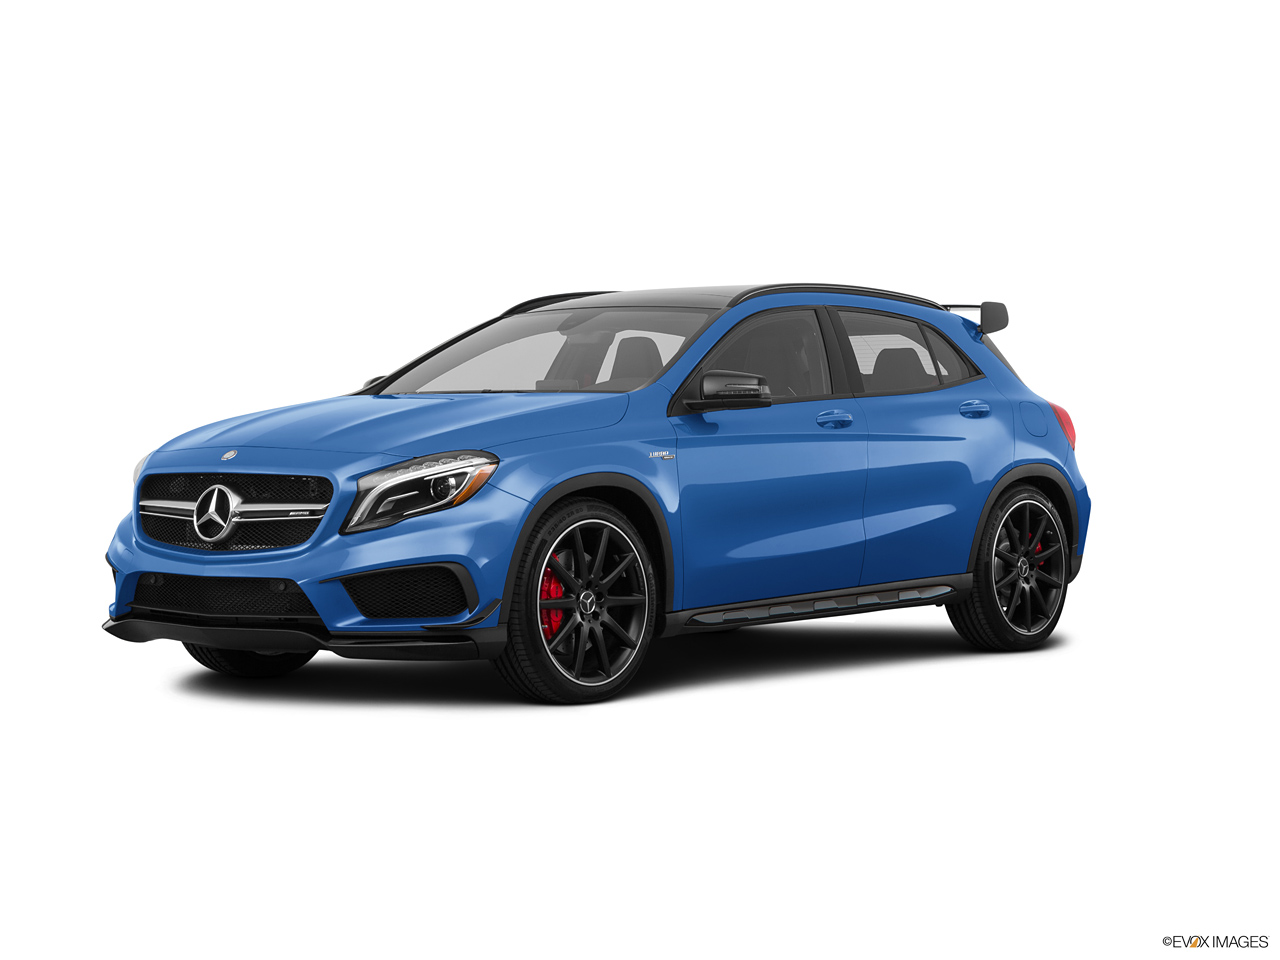 mercedes-benz gla 2016 45 amg in uae: new car prices, specs